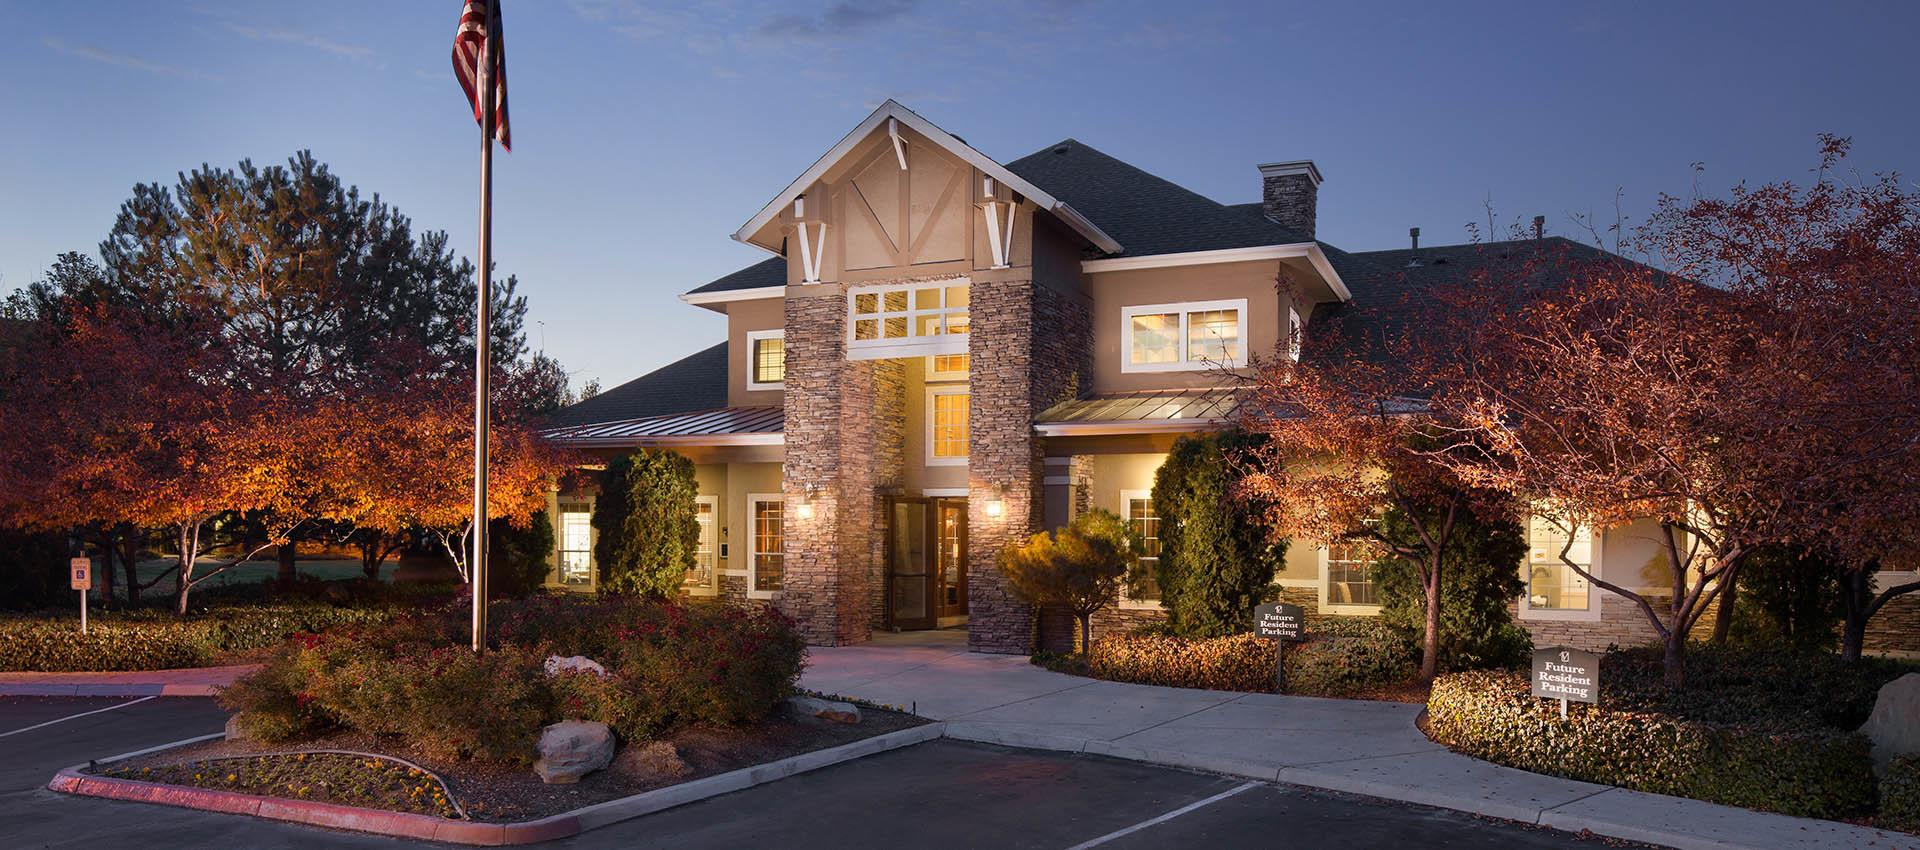 Clubhouse at The Vintage at South Meadows Condominium Rentals in Reno